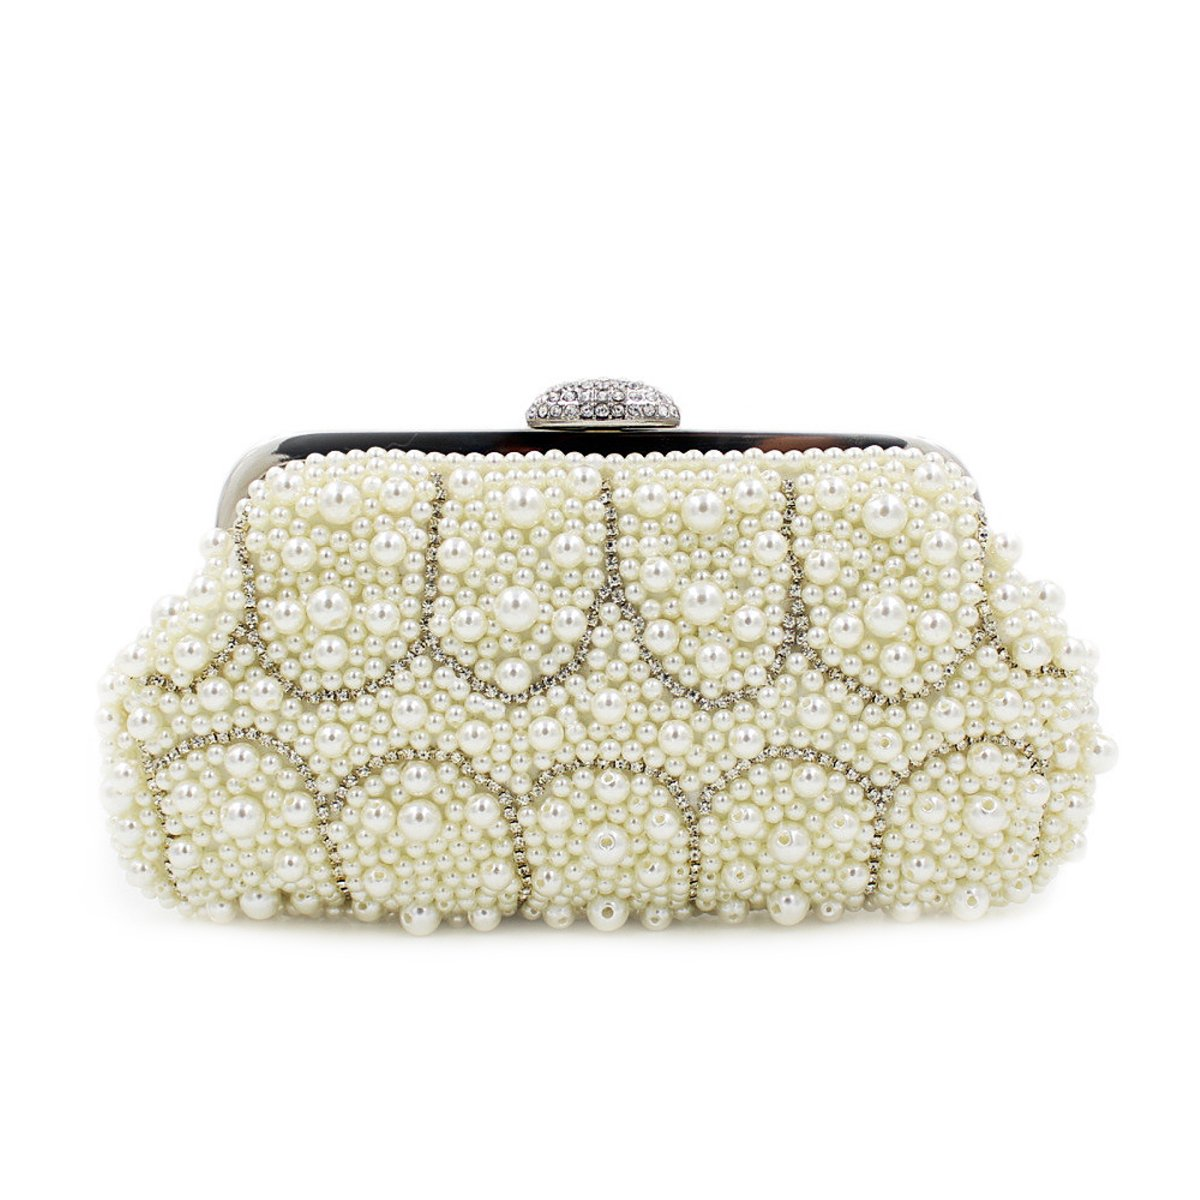 Flada Clutch Handbags for Women Pearl Evening Clutches for Weddings Purse with Handle